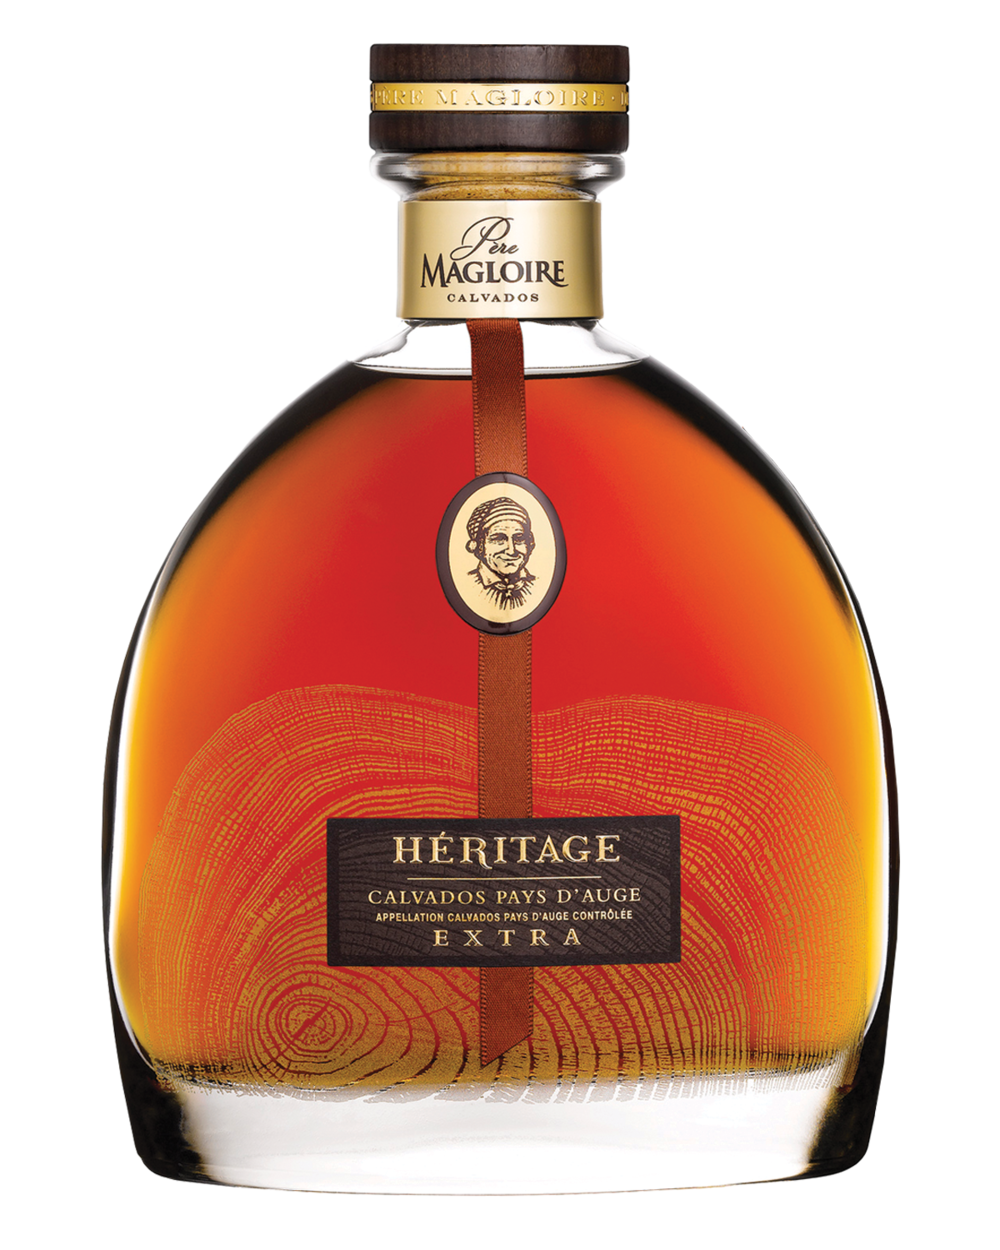 Pere-magloire-extra-heritage-calvados.png